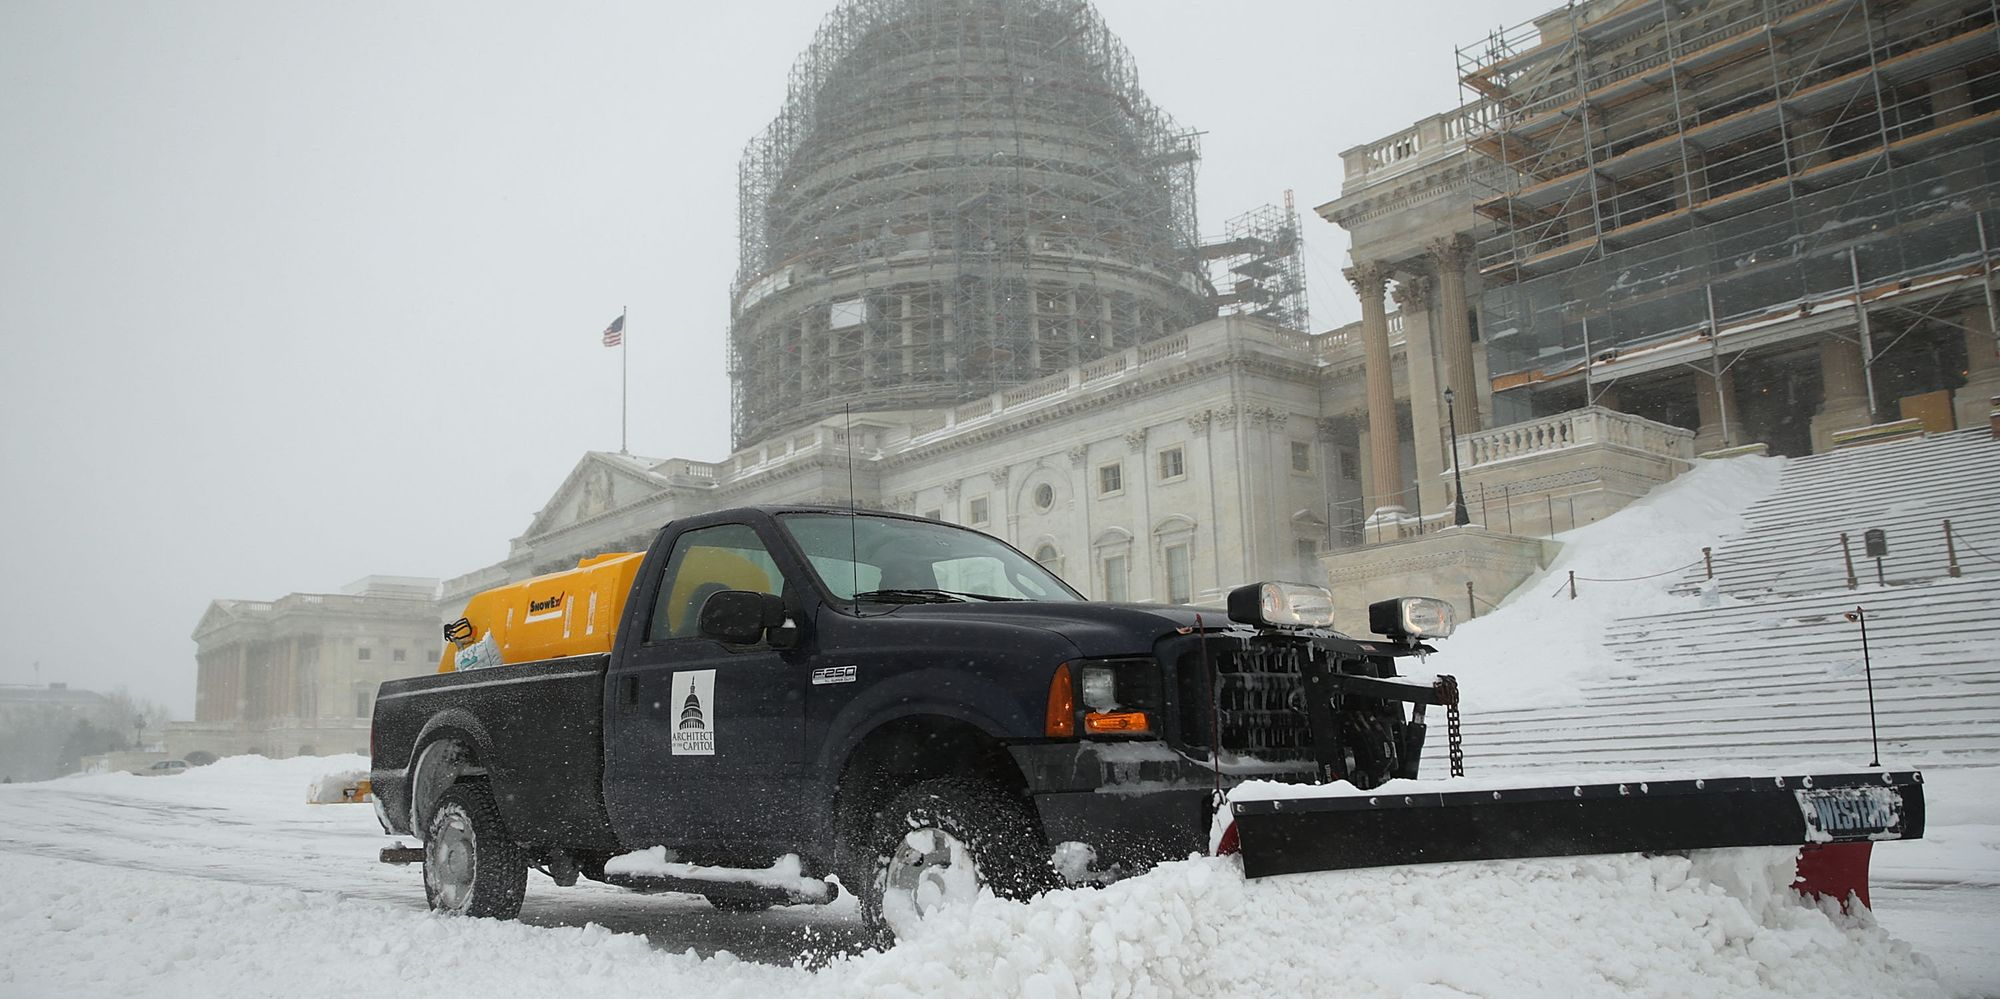 entry storm jonas government shutdown congress acebaadccbe